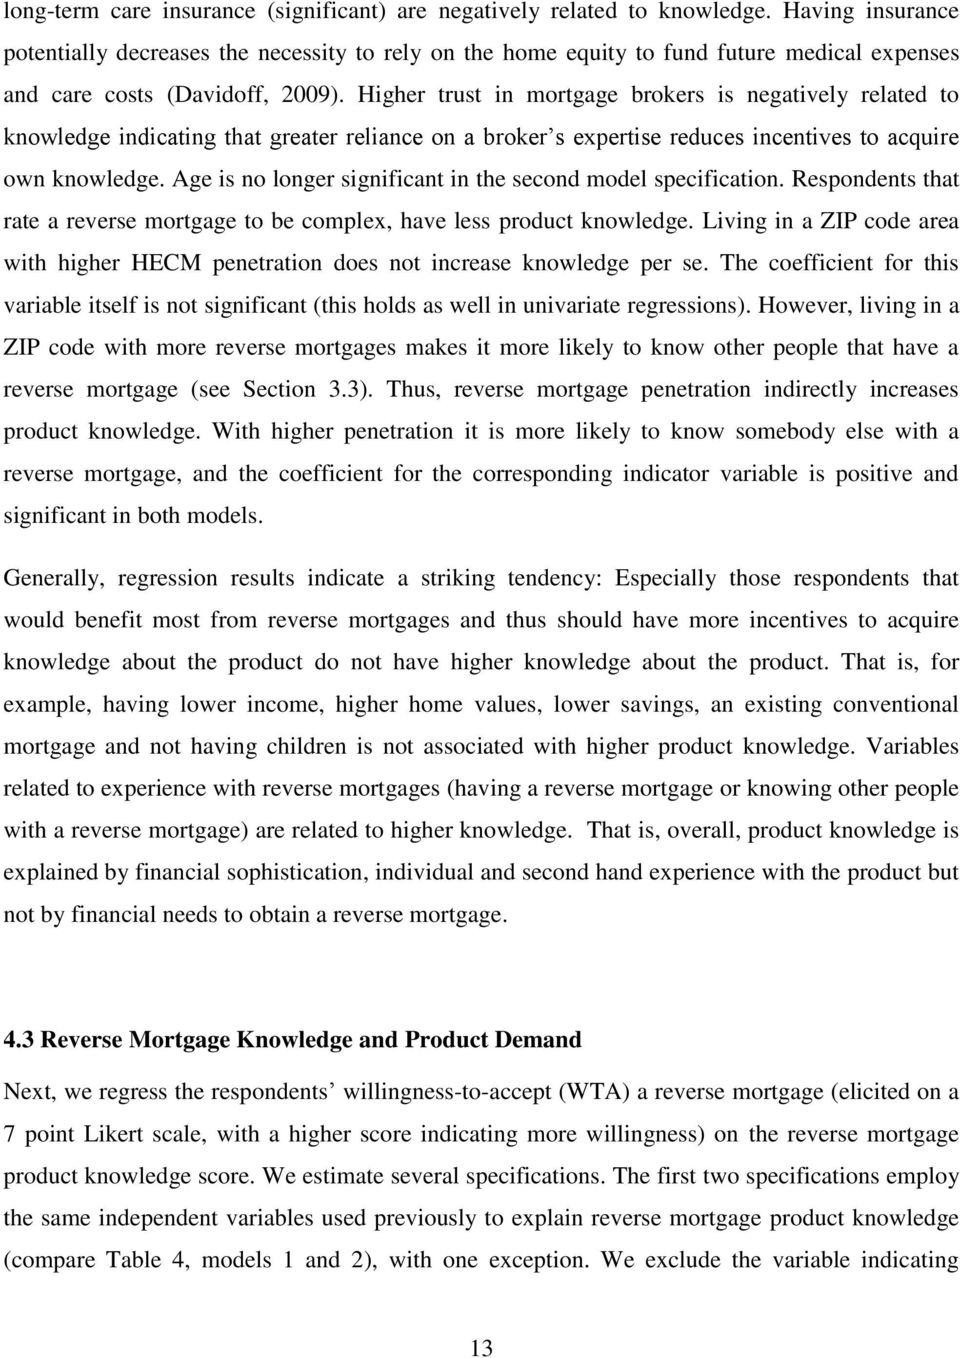 Higher trust in mortgage brokers is negatively related to knowledge indicating that greater reliance on a broker s expertise reduces incentives to acquire own knowledge.